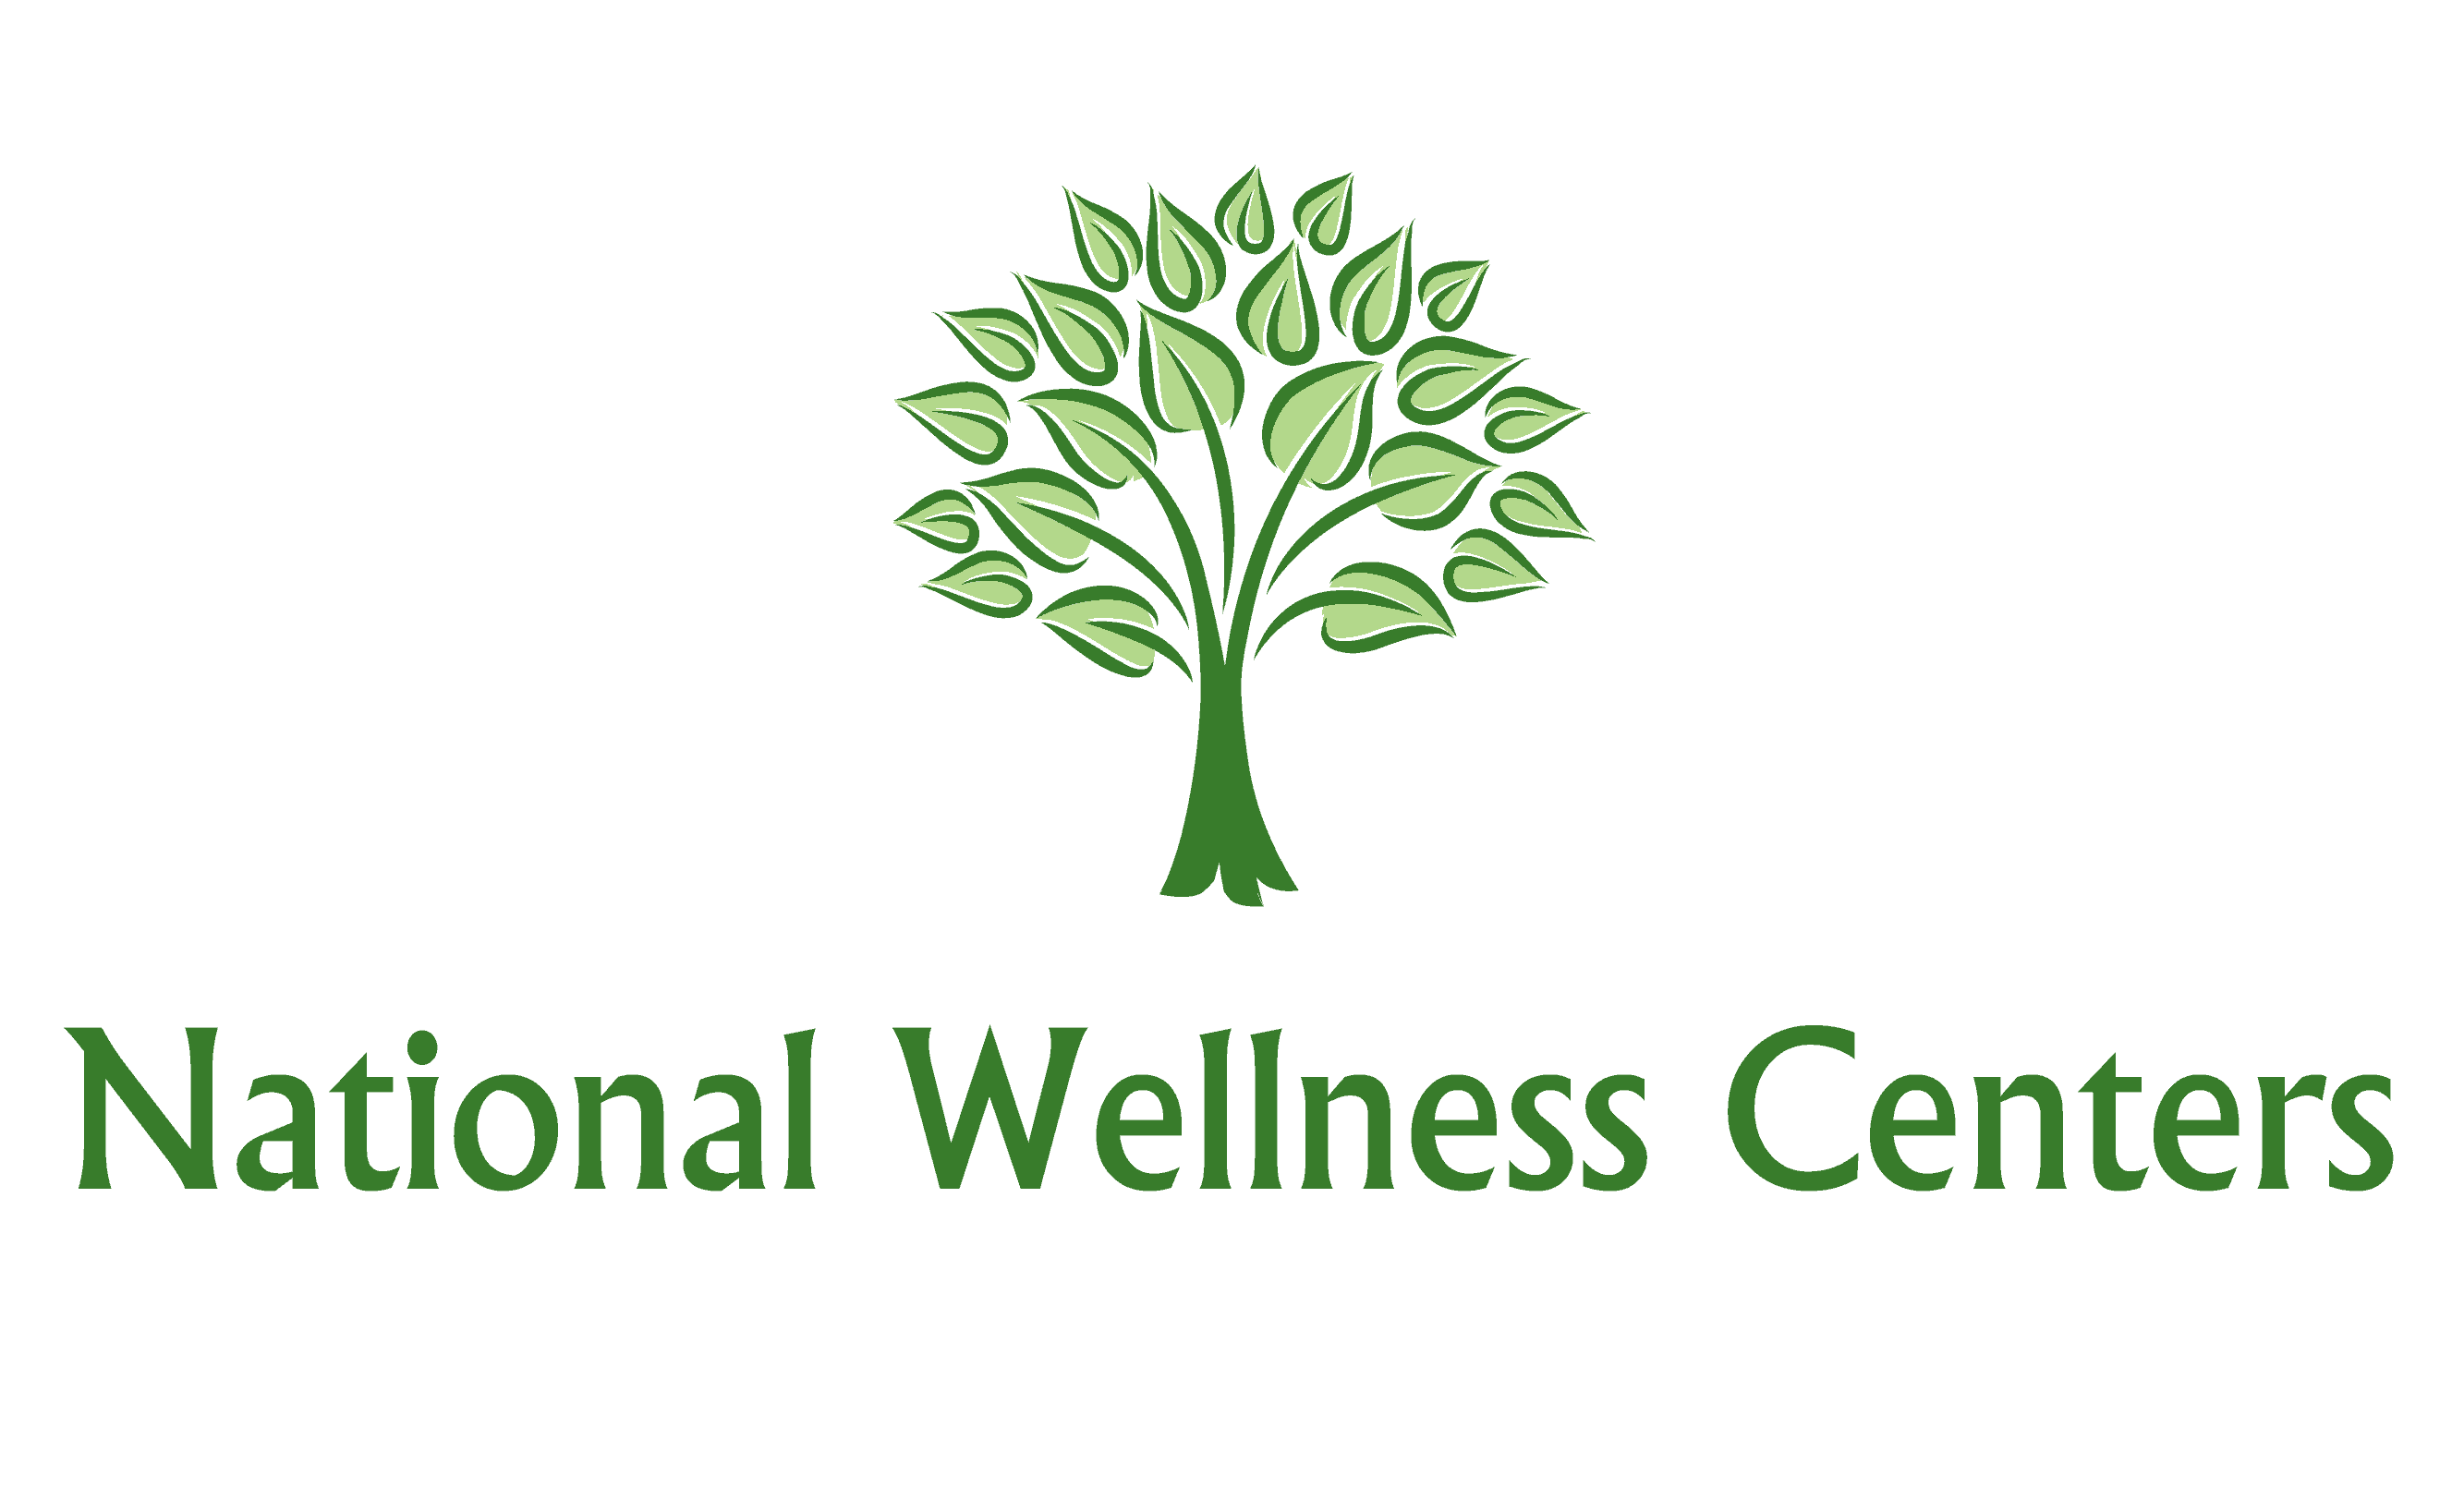 National Wellness Centers